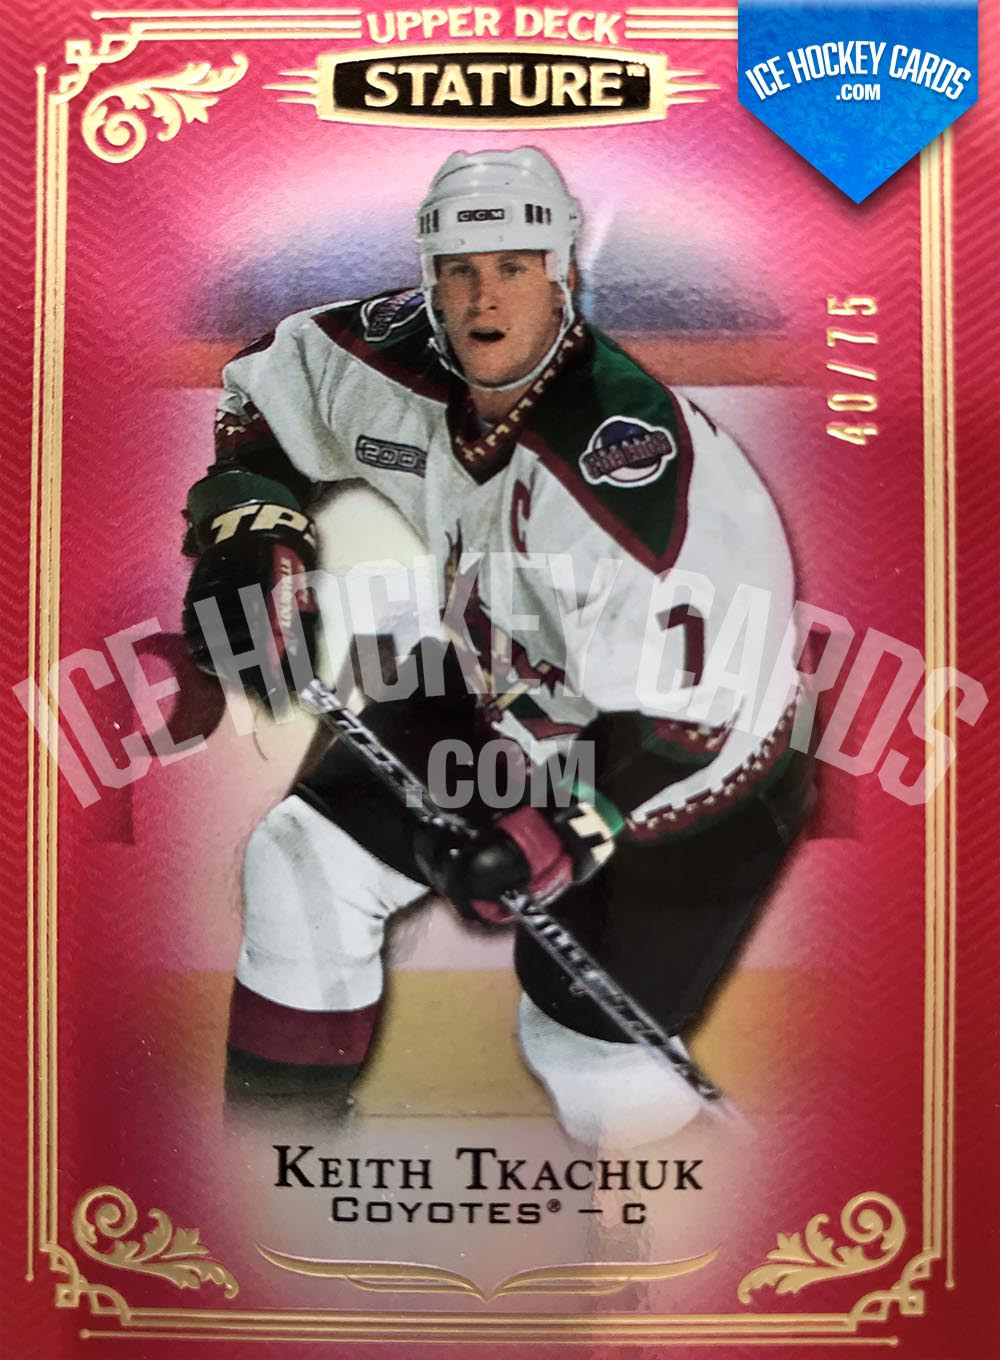 Upper Deck - Stature 2019-20 - Keith Tkachuk Red Base Card # to 75